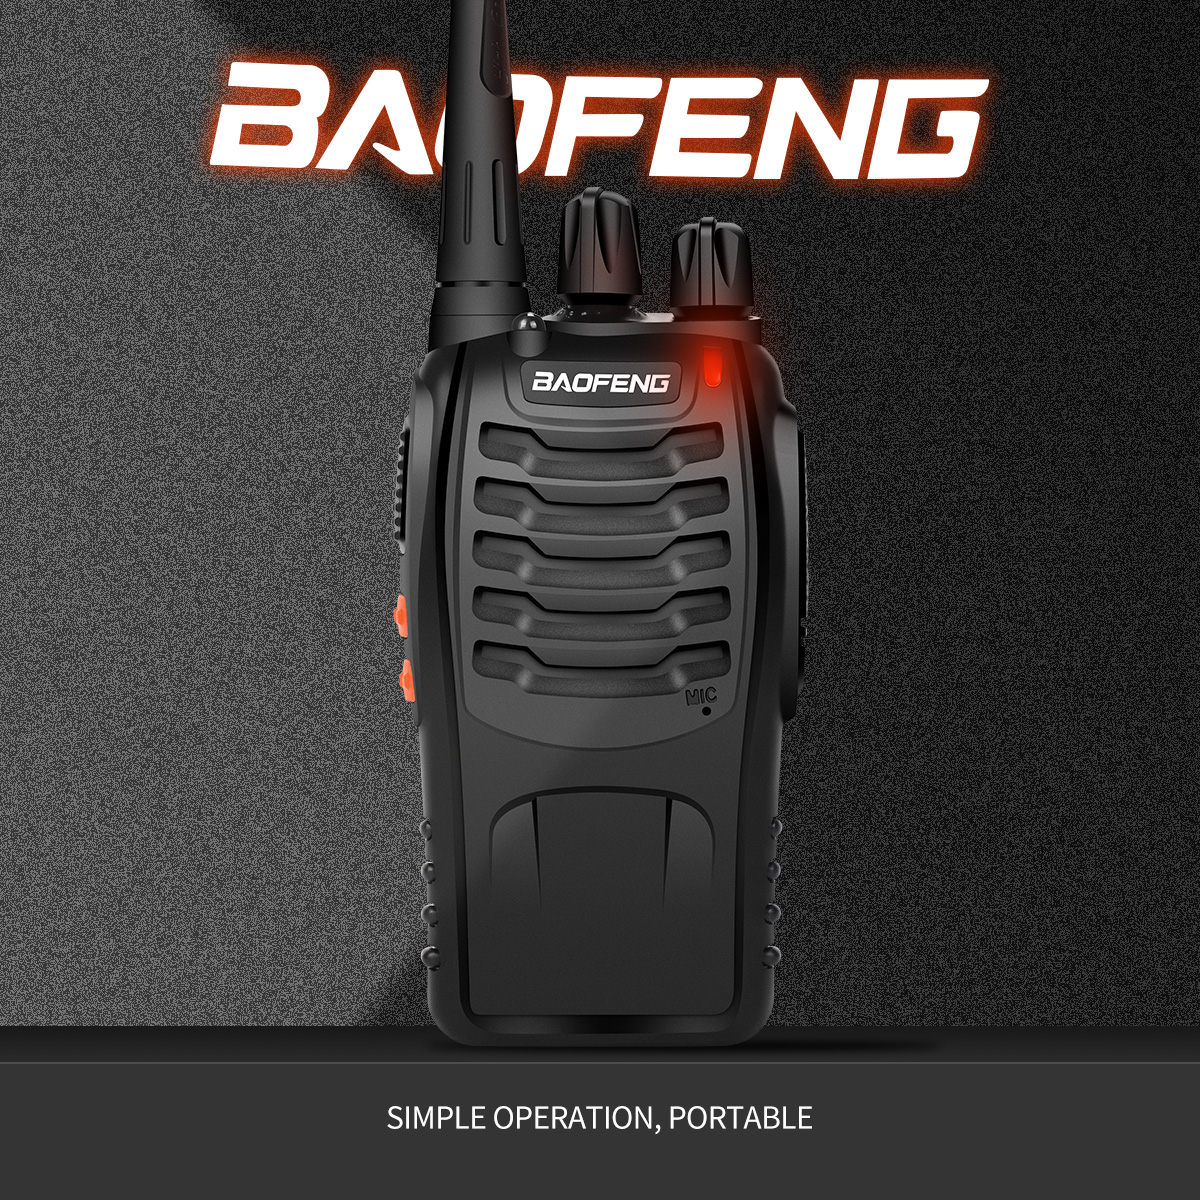 Hot BaoFeng BF-888S Walkie Talkie UHF Two Way Radio Baofeng 888s UHF 400-470MHz 16CH Portable Transceiver With Baofeng Earphone